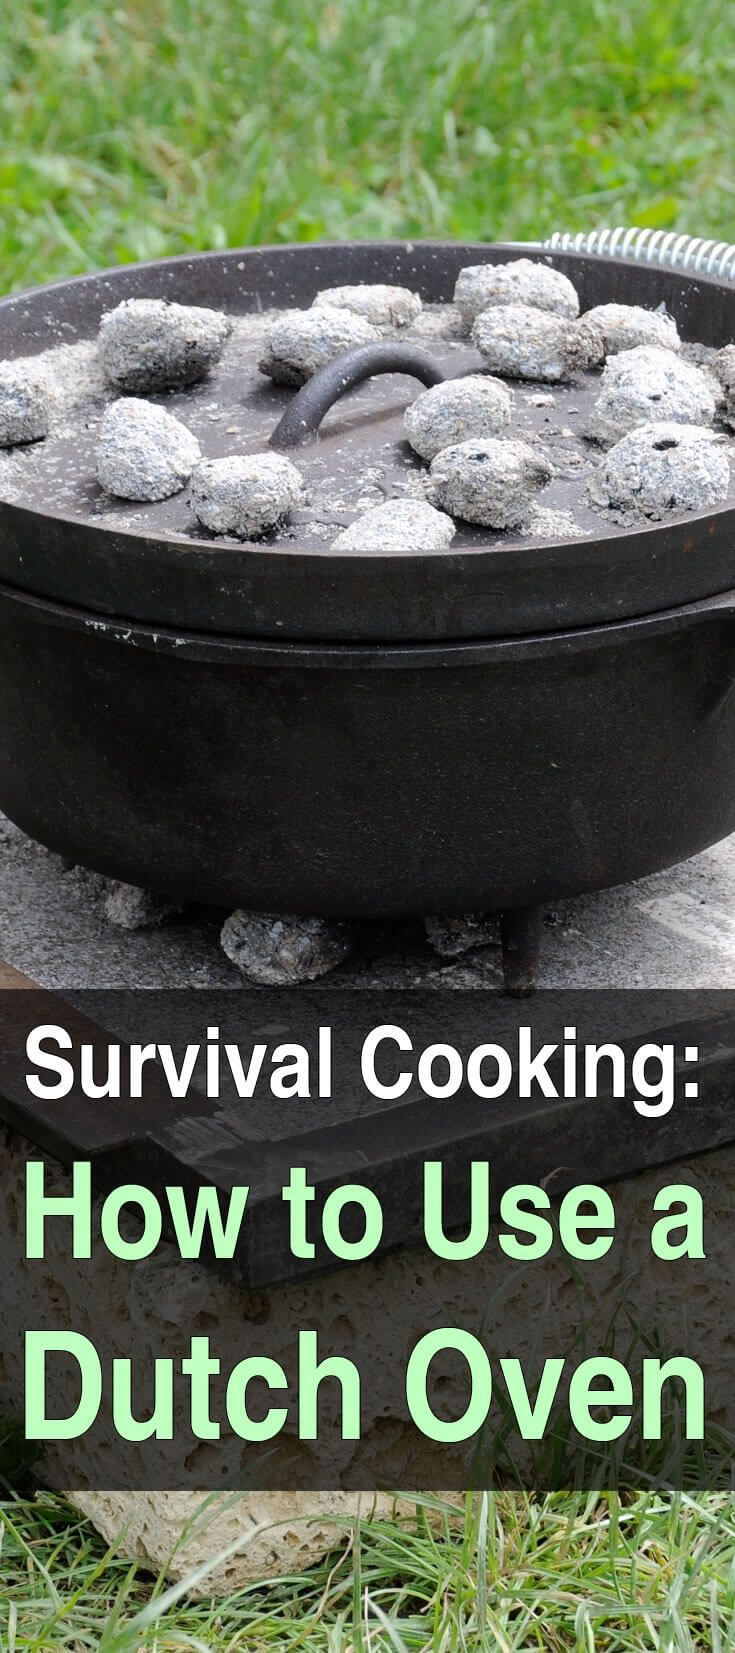 Of all the tools you can use to cook food off the grid, the best one is the Dutch oven. Every prepper should get one and learn how to use it.